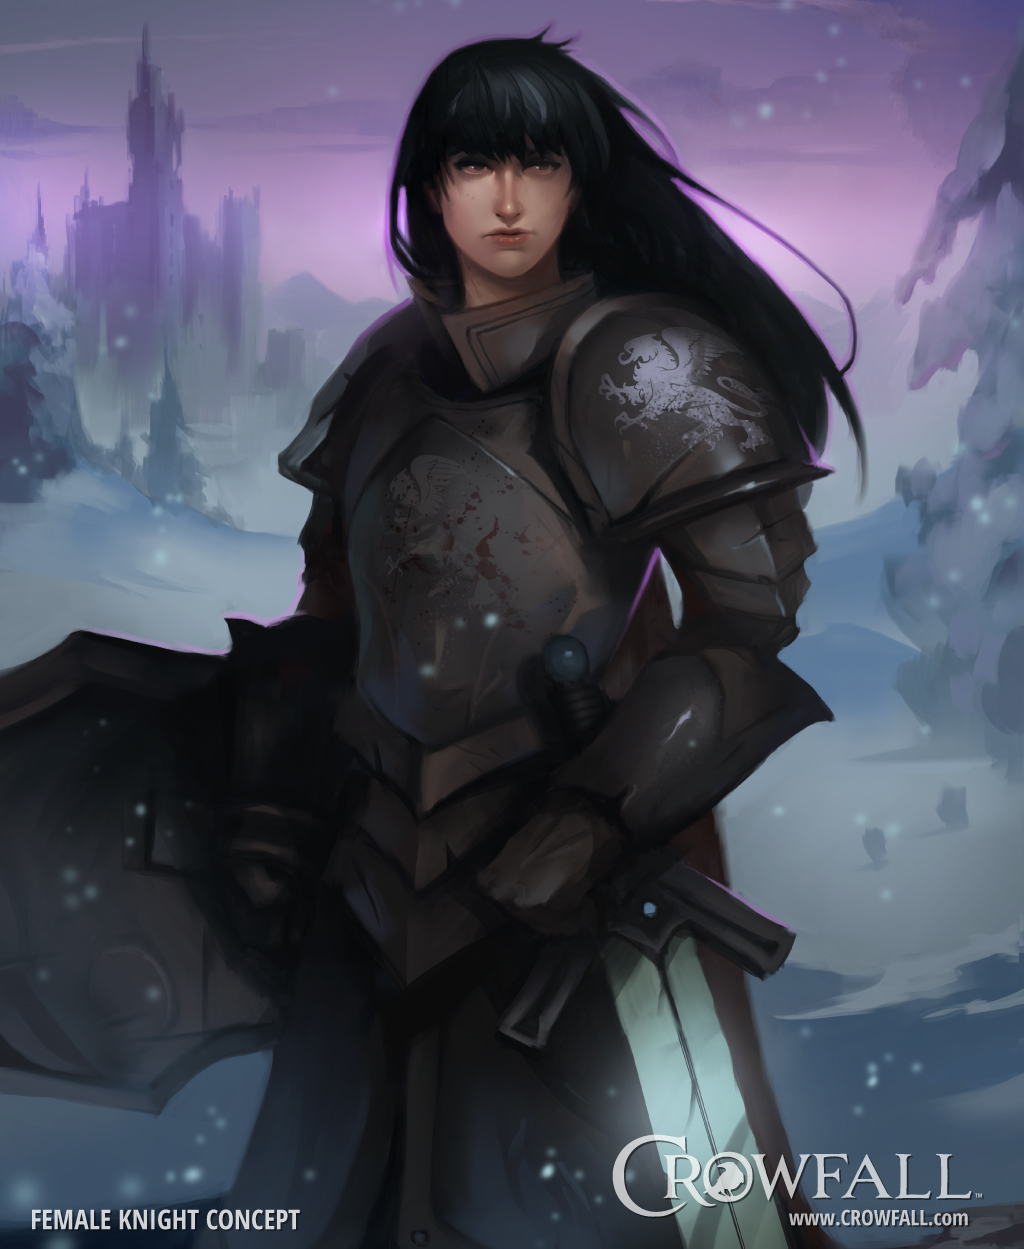 Female Knight Concept #1